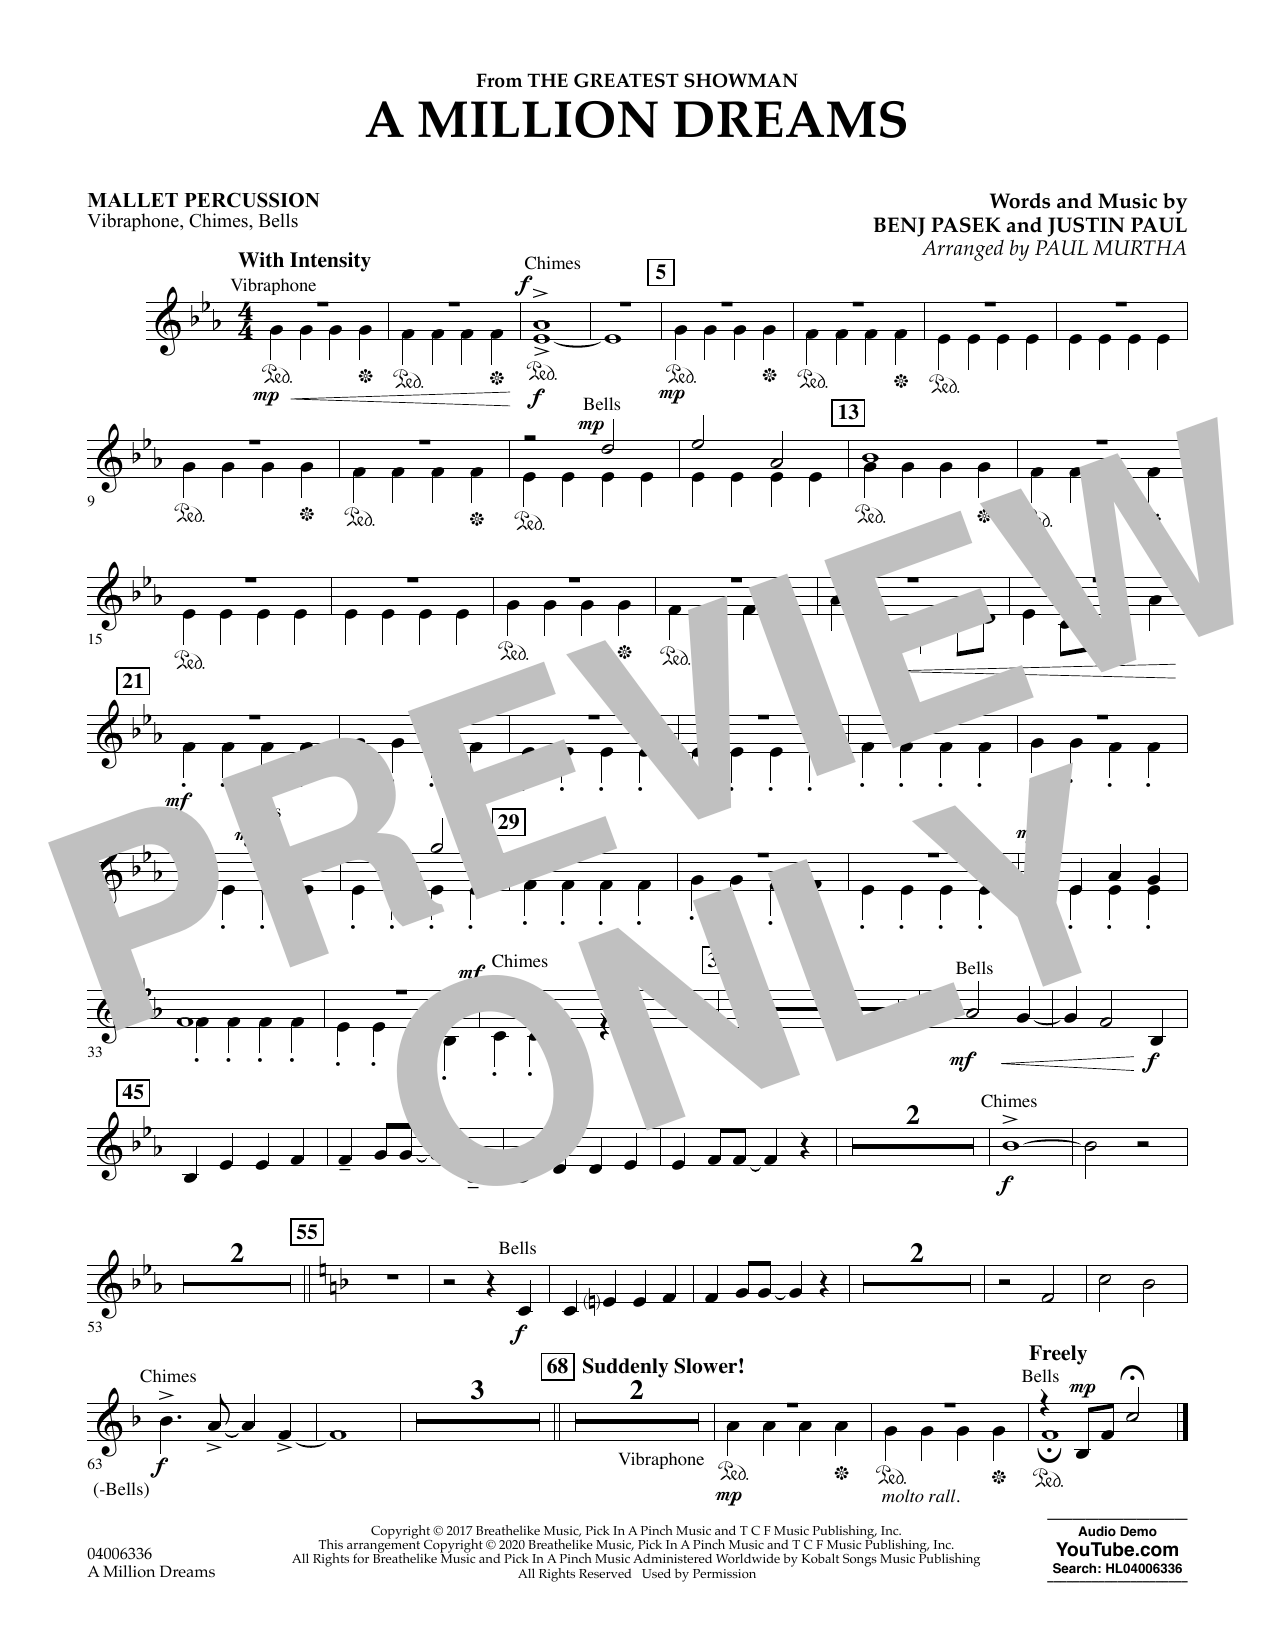 A Million Dreams (from The Greatest Showman) (arr. Paul Murtha) - Mallet Percussion (Concert Band)